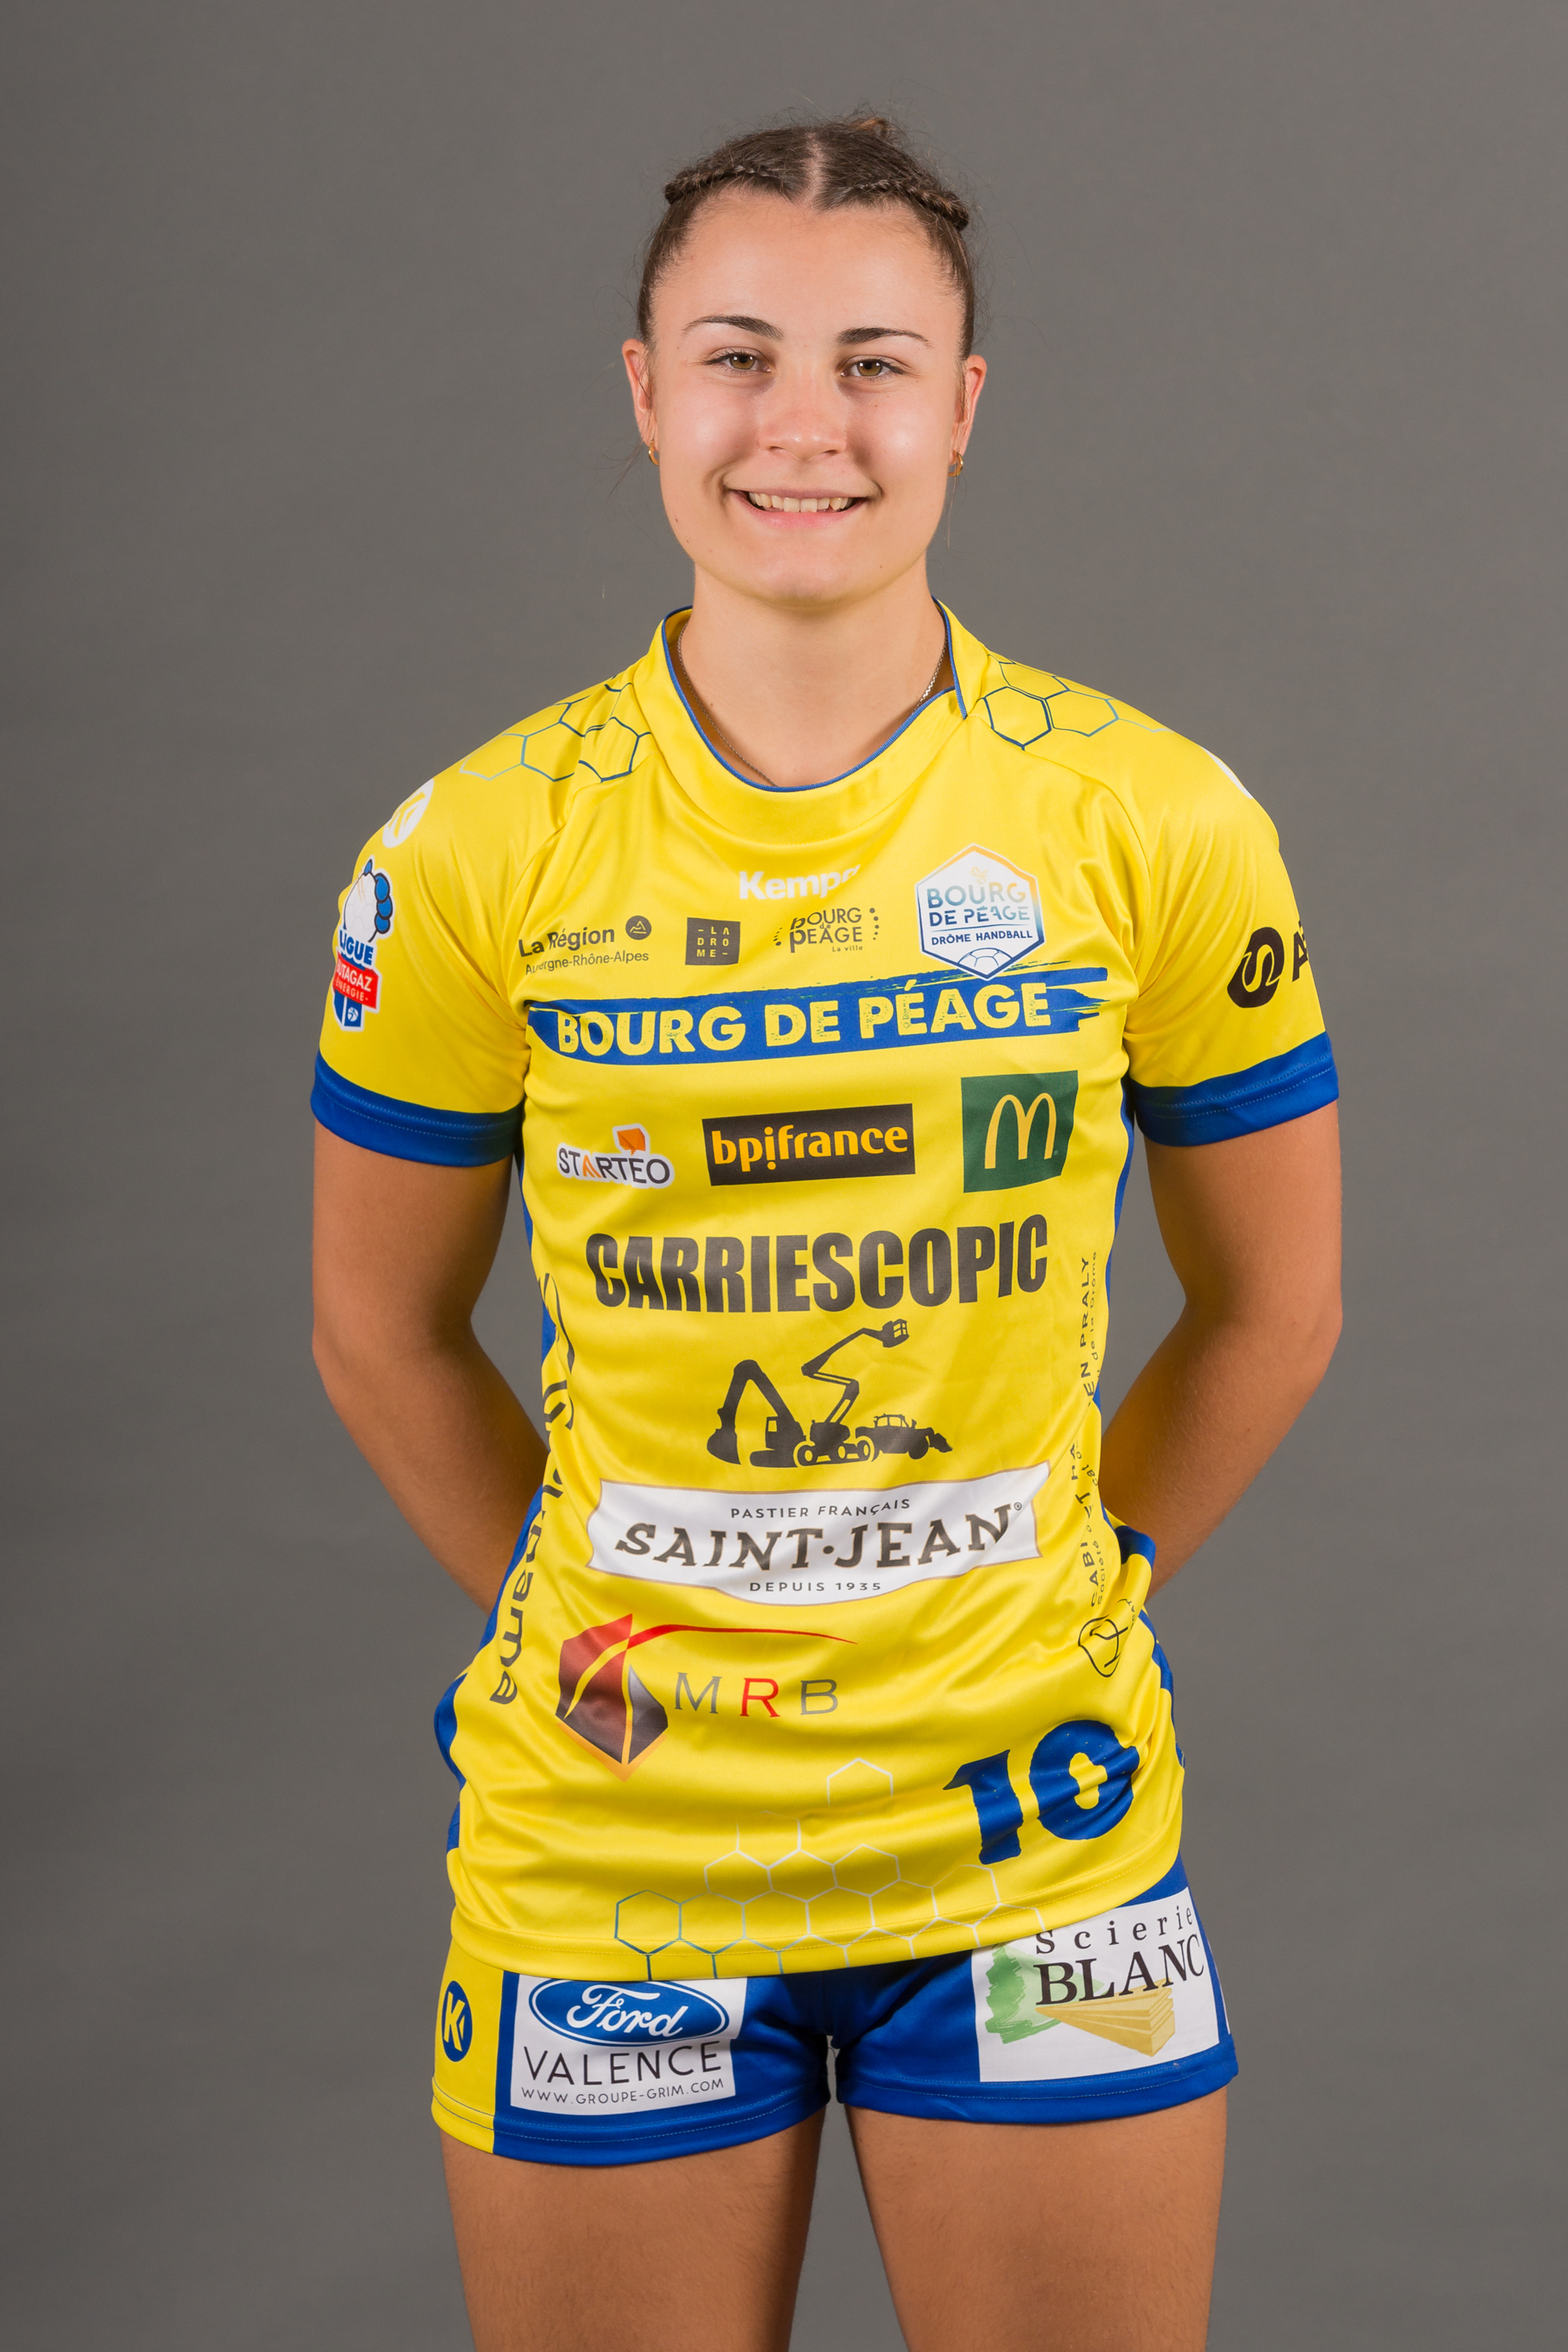 10 - Lucie Modenel